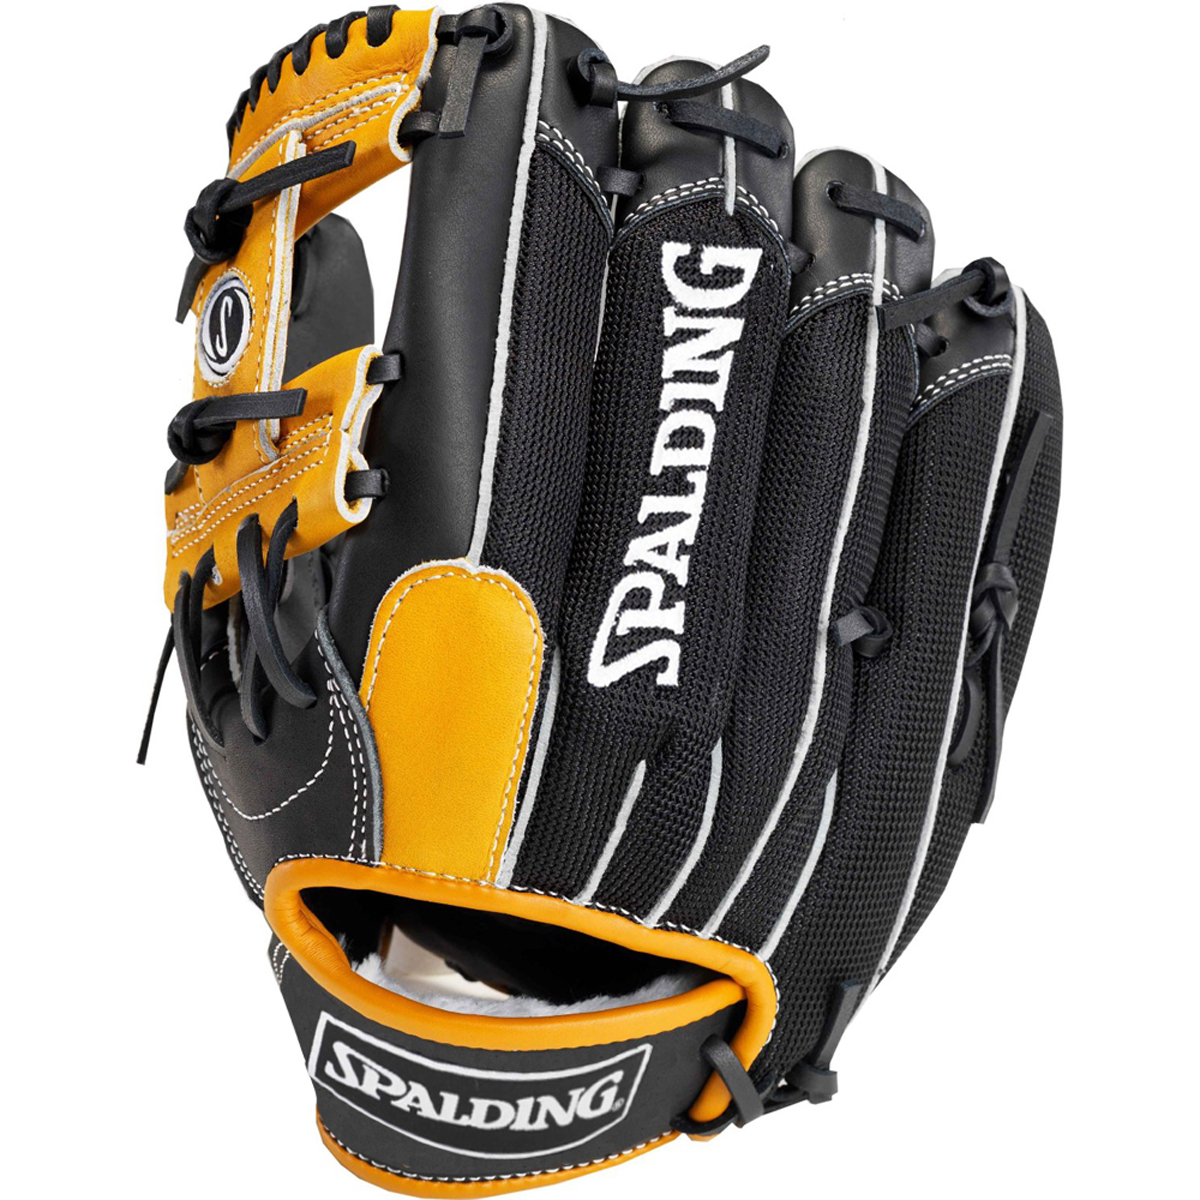 Spalding Youth Mesh Series I-Web Baseball Glove, Right Hand Throw